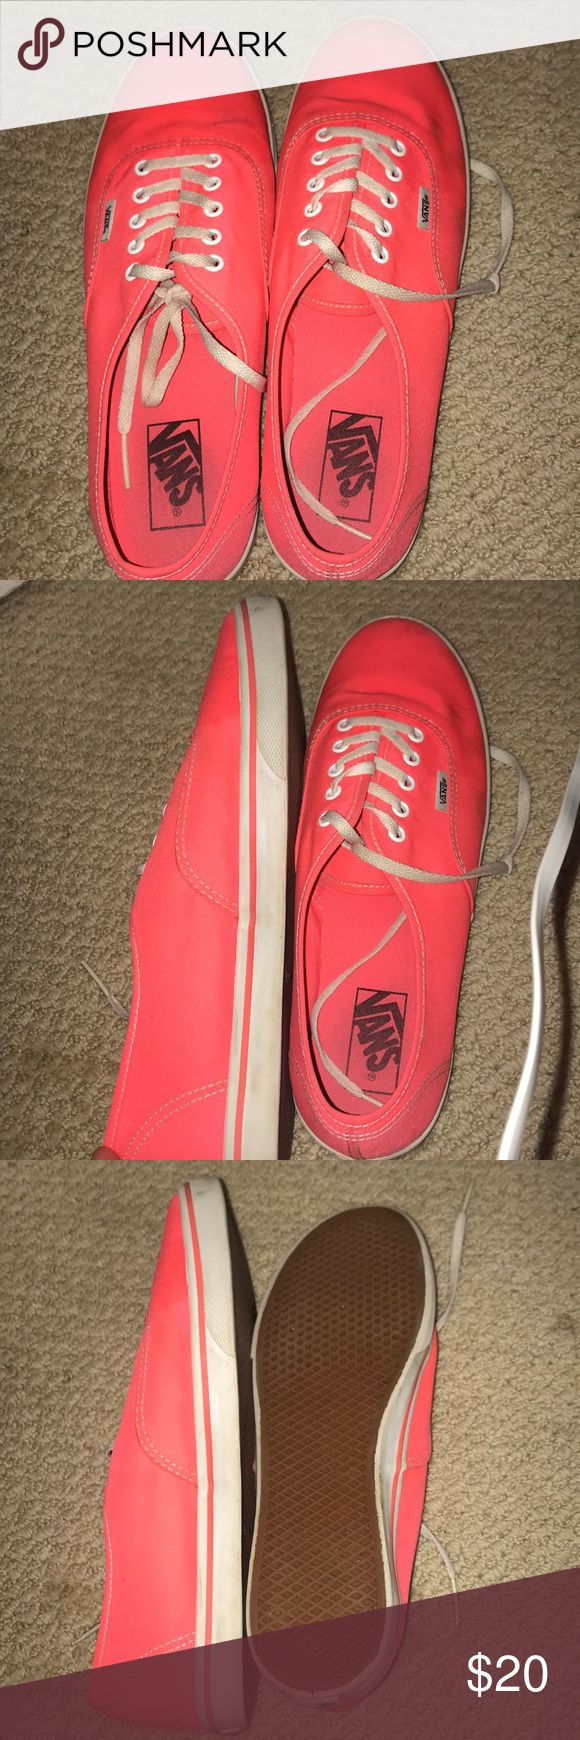 bright coral vans bright coral with white laces basic vans Vans Shoes Sneakers